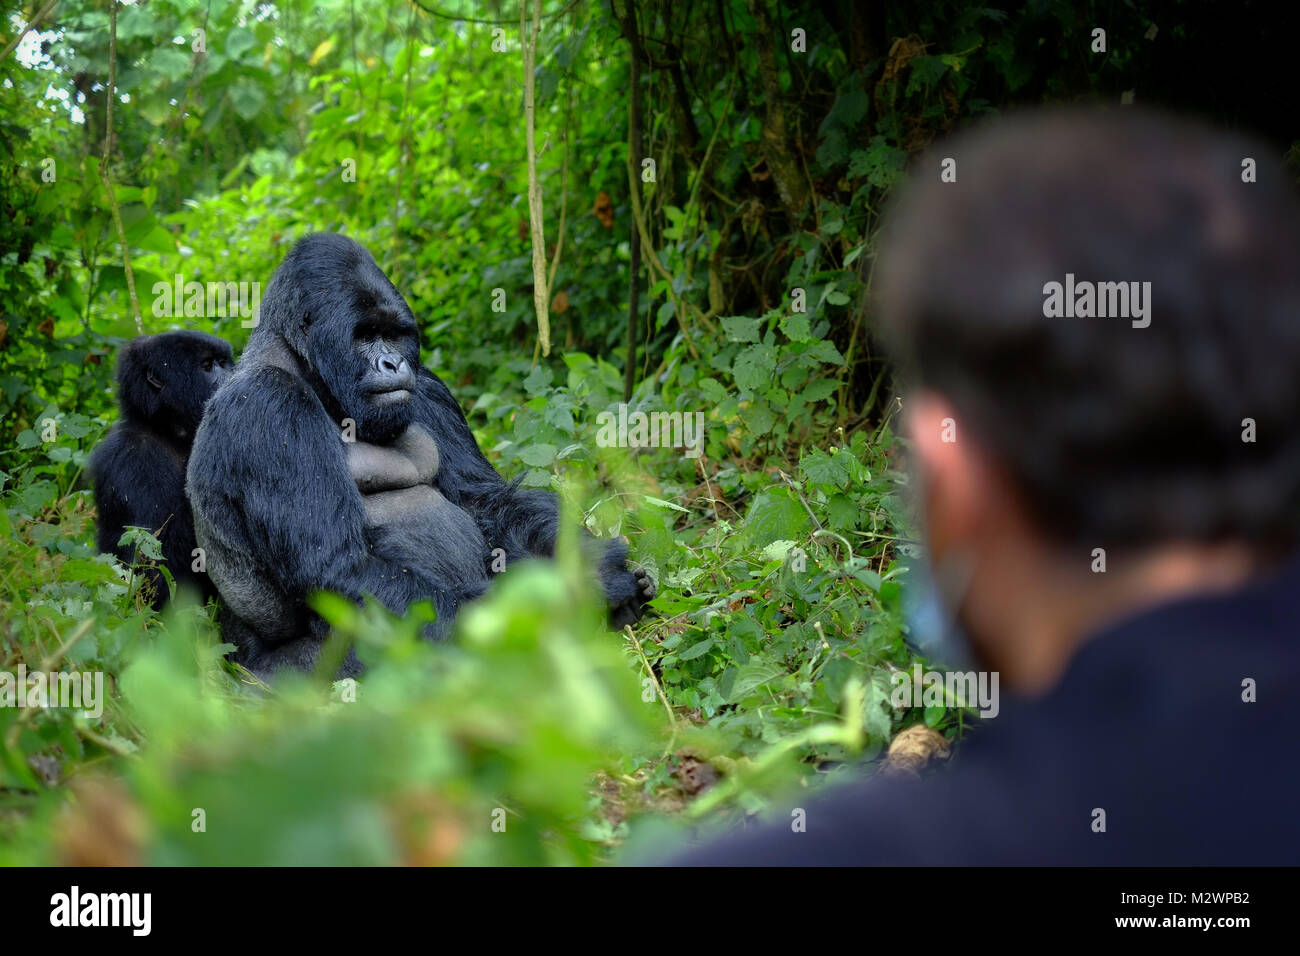 Tourist looking at mountain gorilla in African jungle. Getting very close to wildlife. - Stock Image